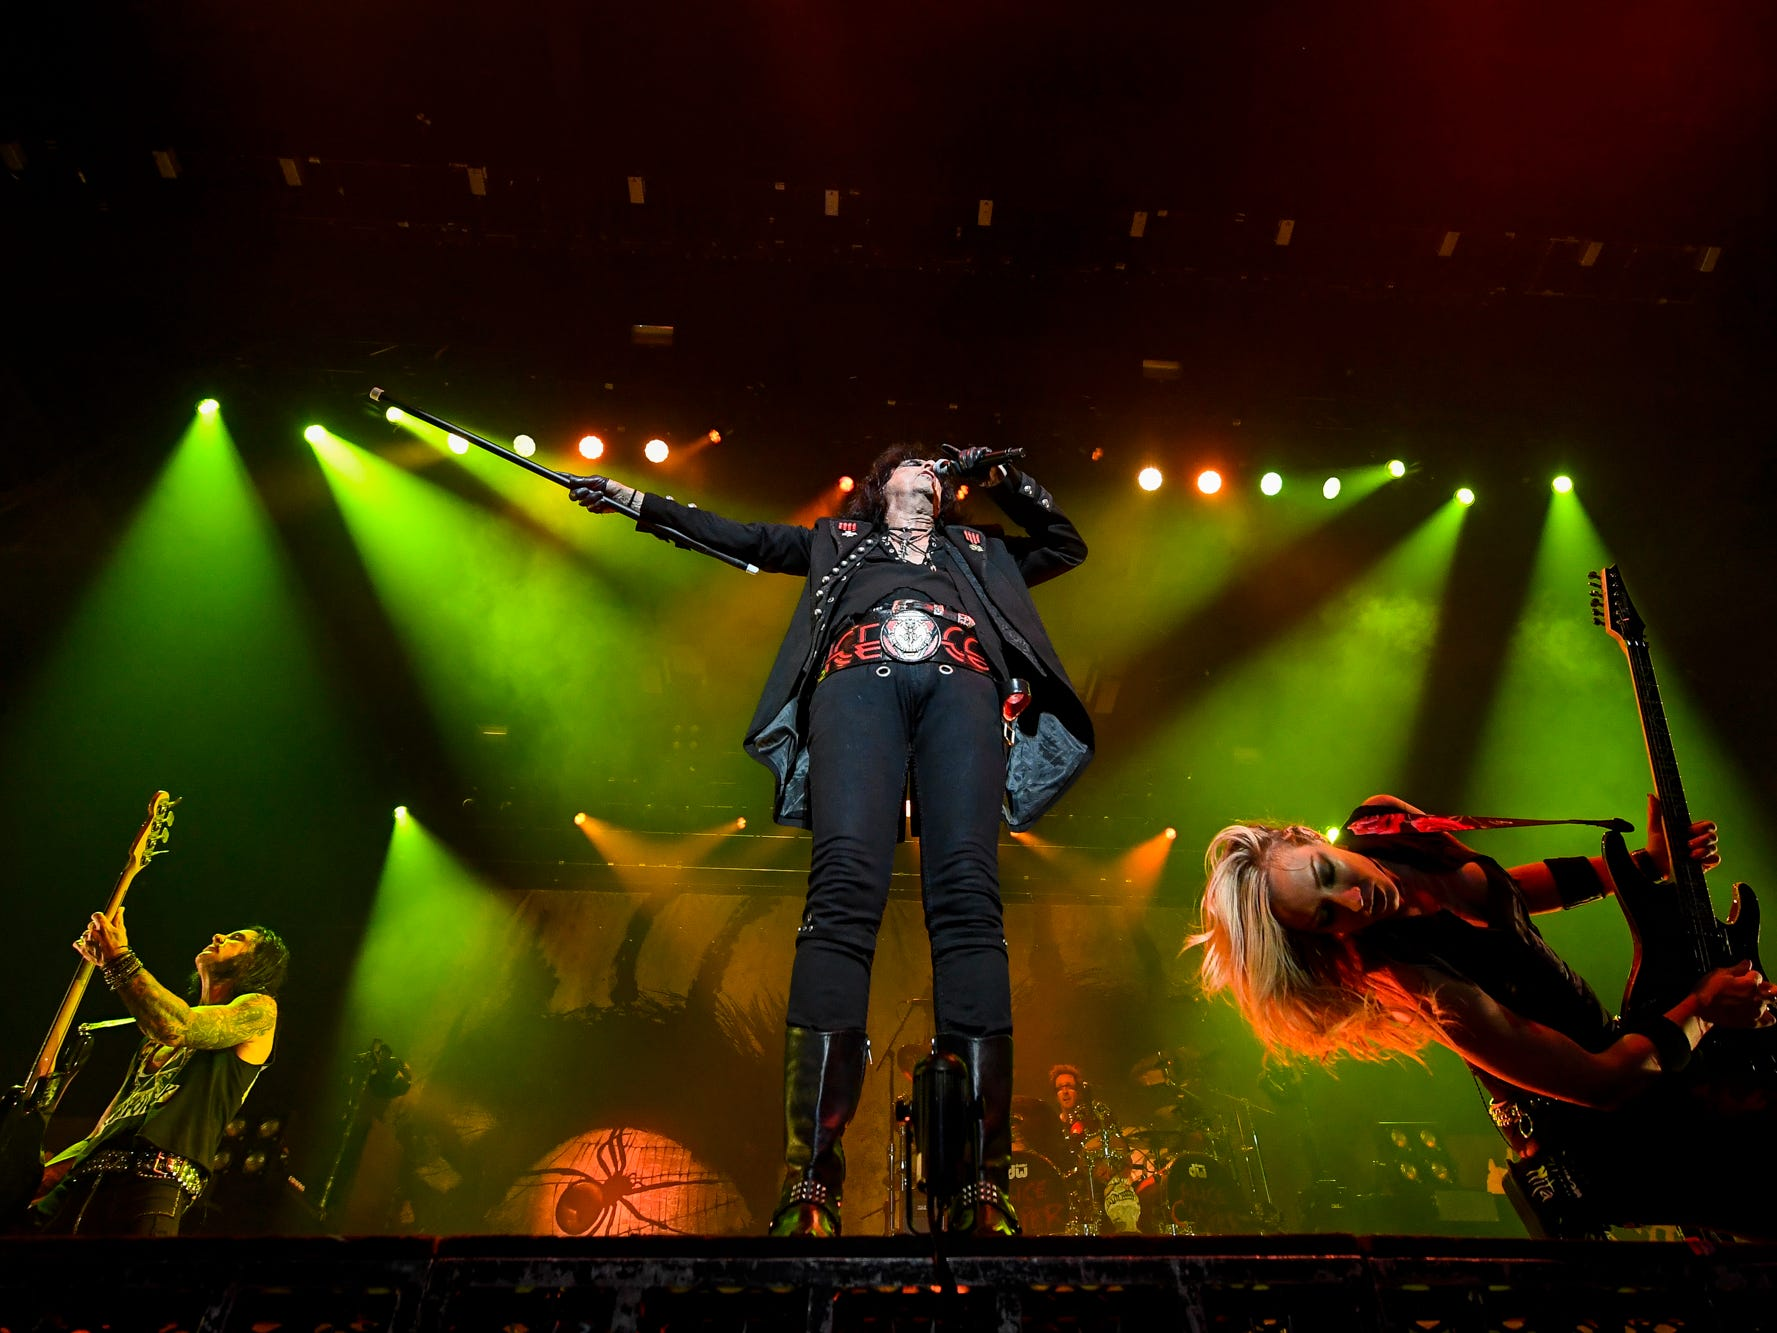 Rock legend Alice Cooper opens the York Fair Grandstand stage, Friday, September 7, 2018.